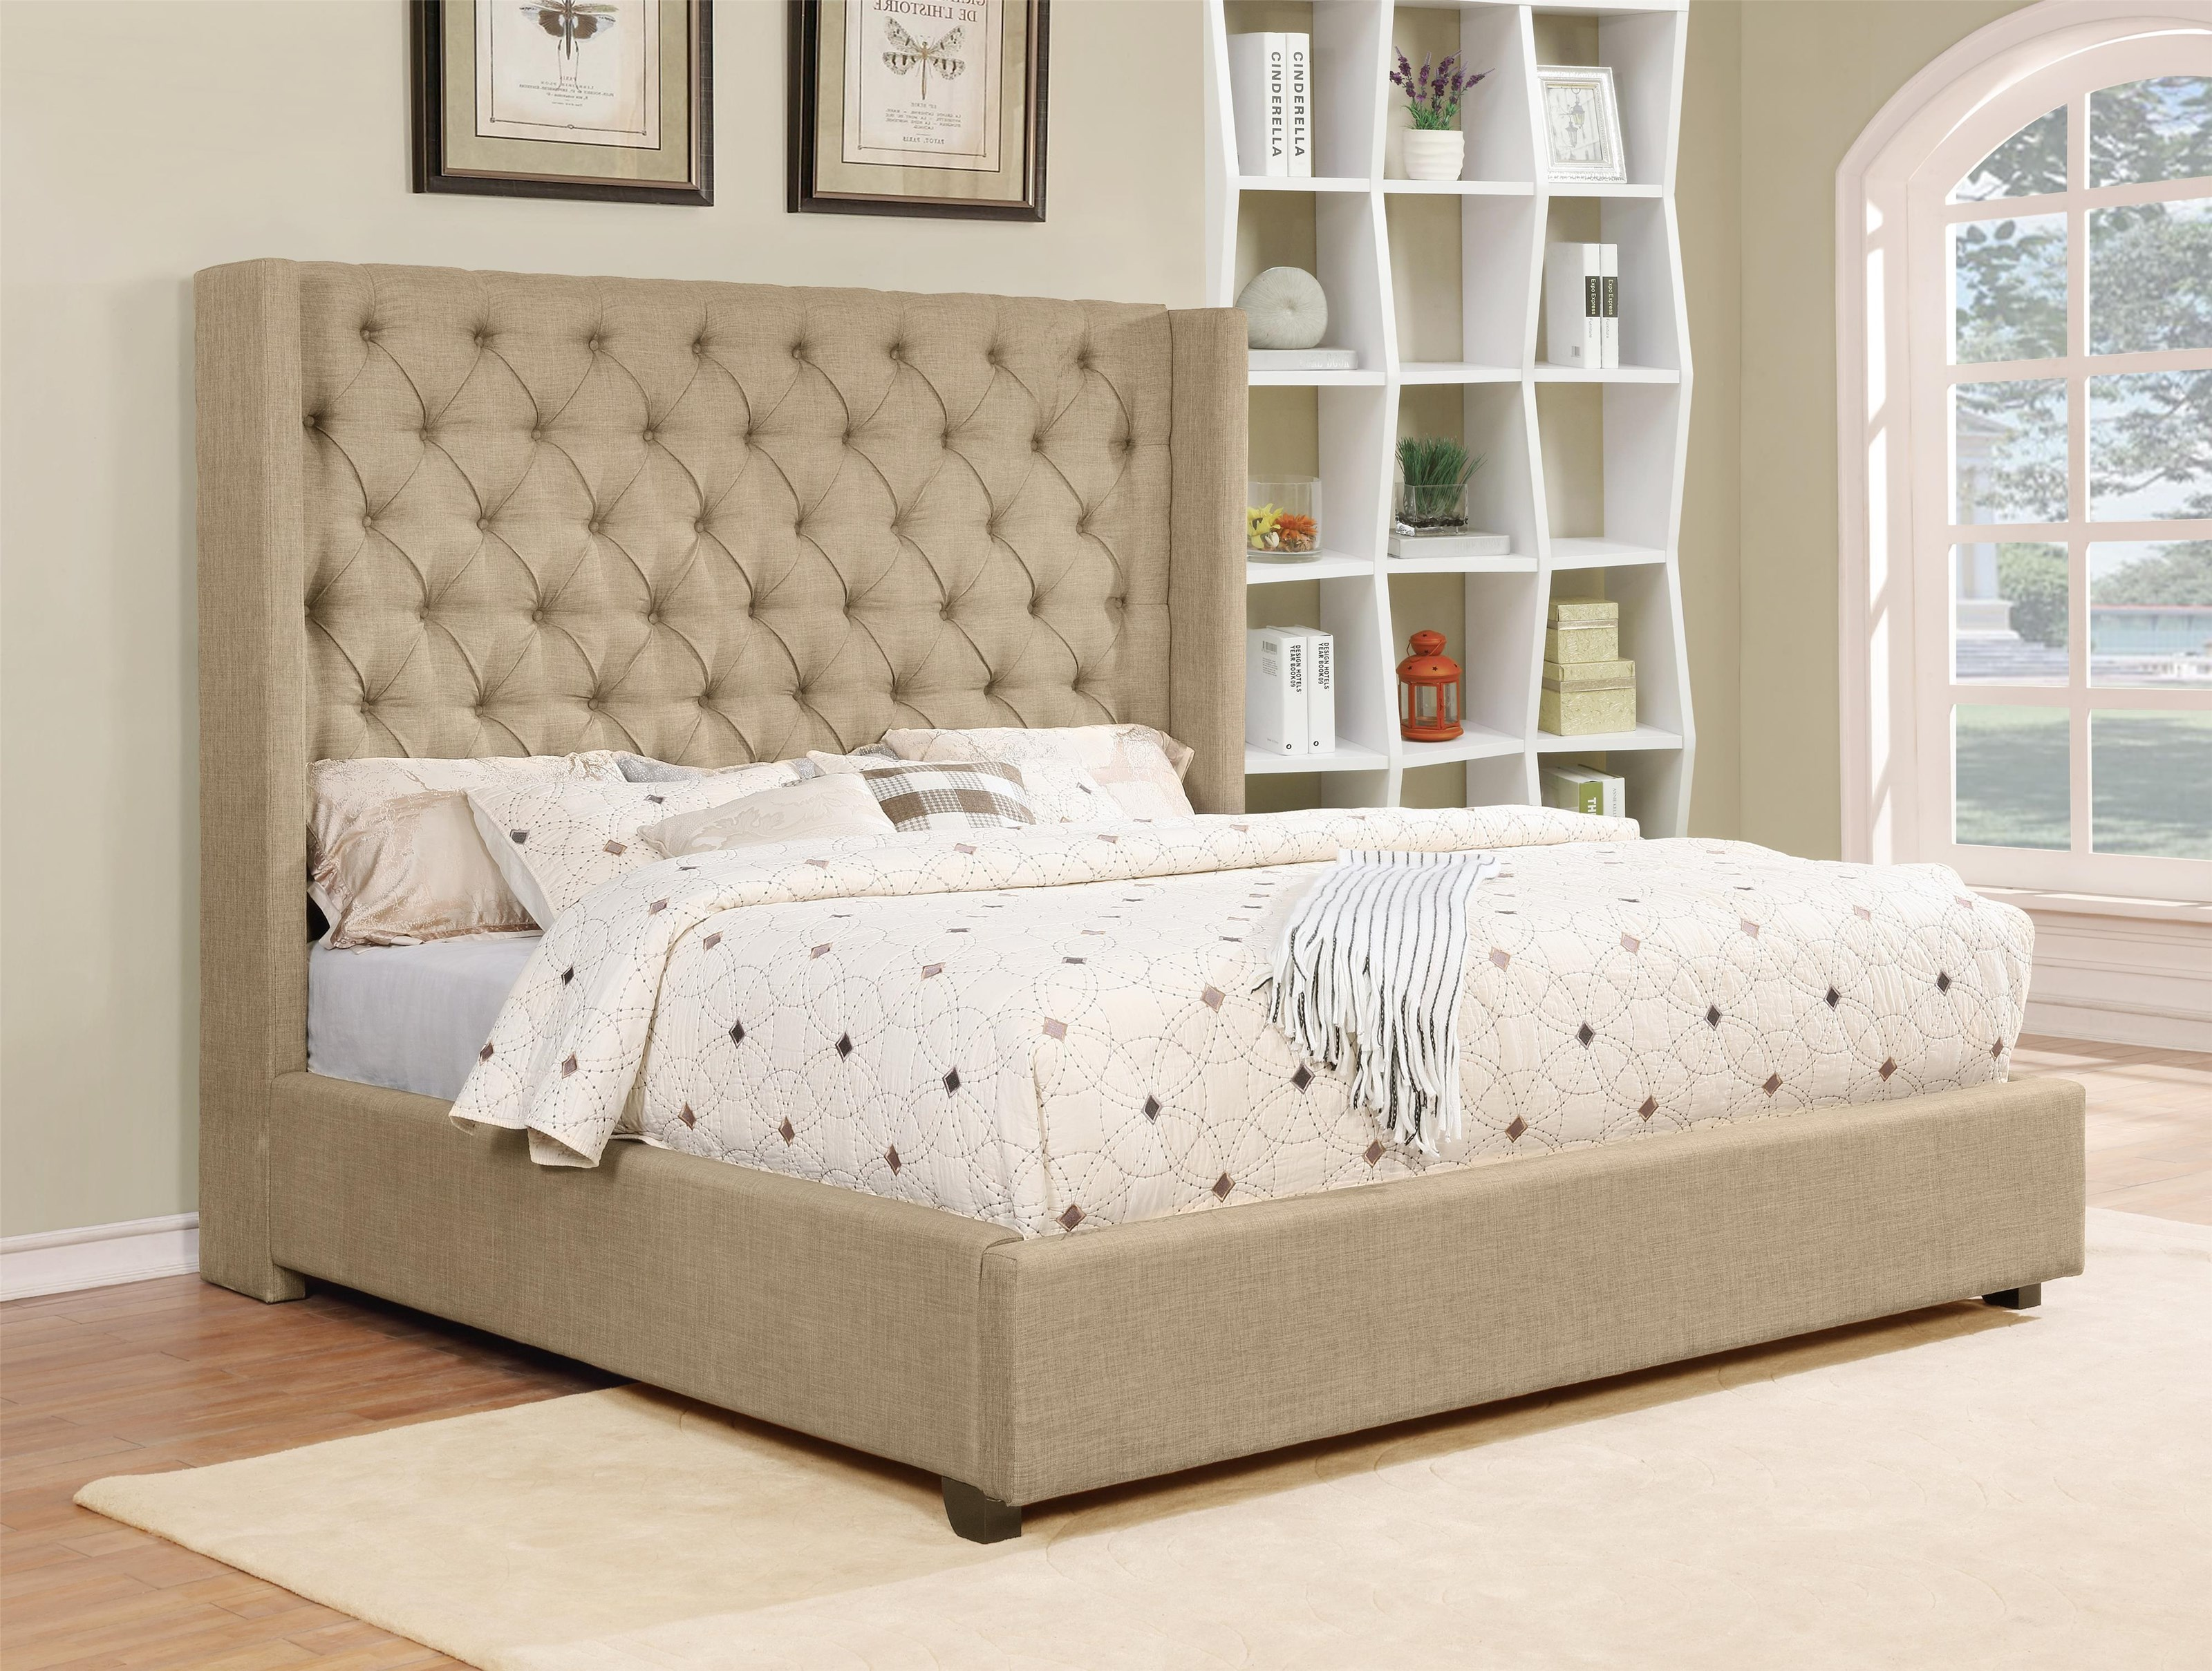 C9246J King Upholstered Bed by Lifestyle at Furniture Fair - North Carolina